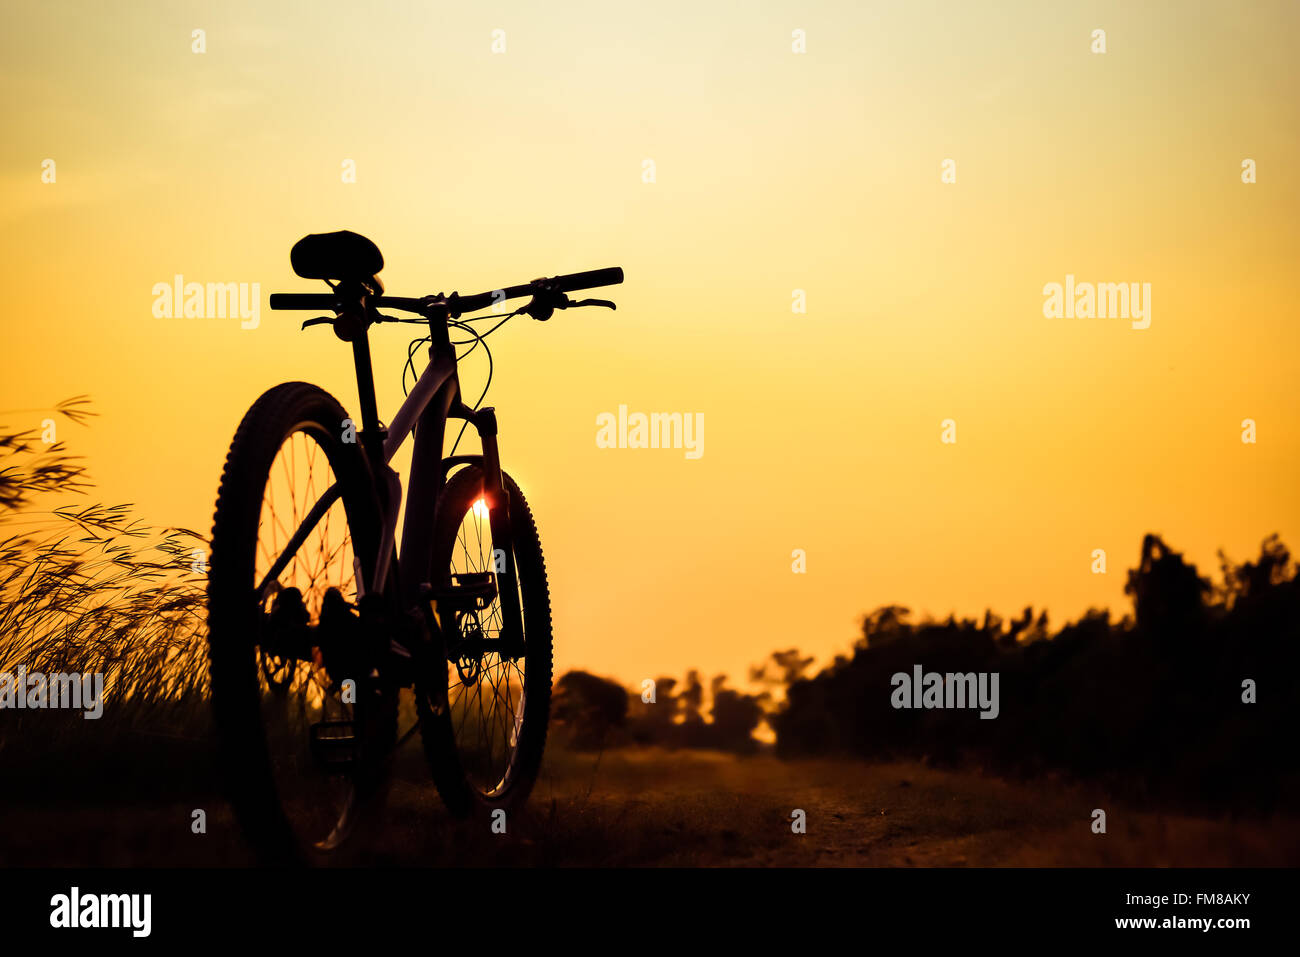 Silhouette of mountain biker in single track on sunset sky - Stock Image